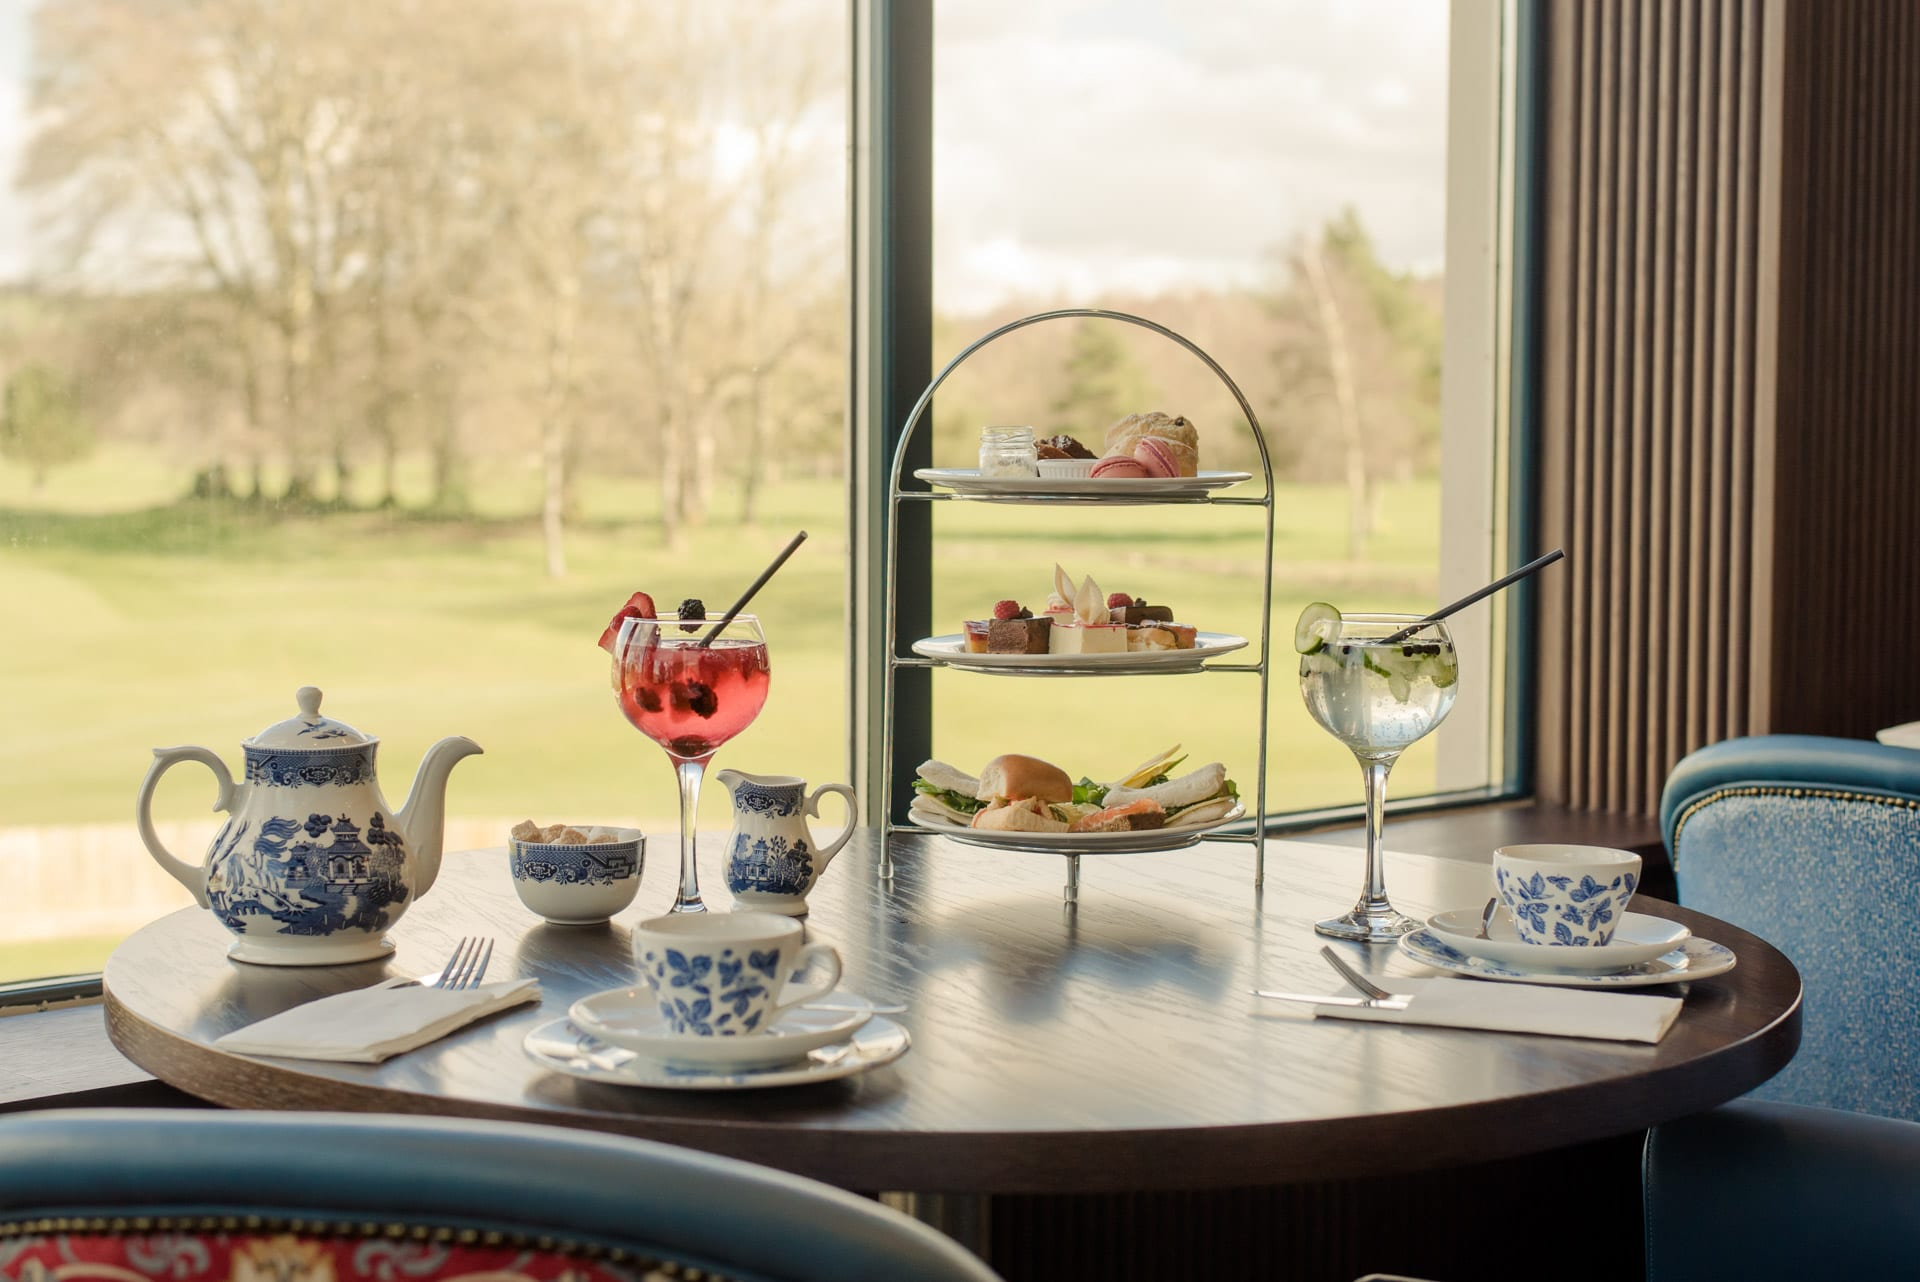 Tulfarris Hotel & Golf Resort Afternoon Tea with View